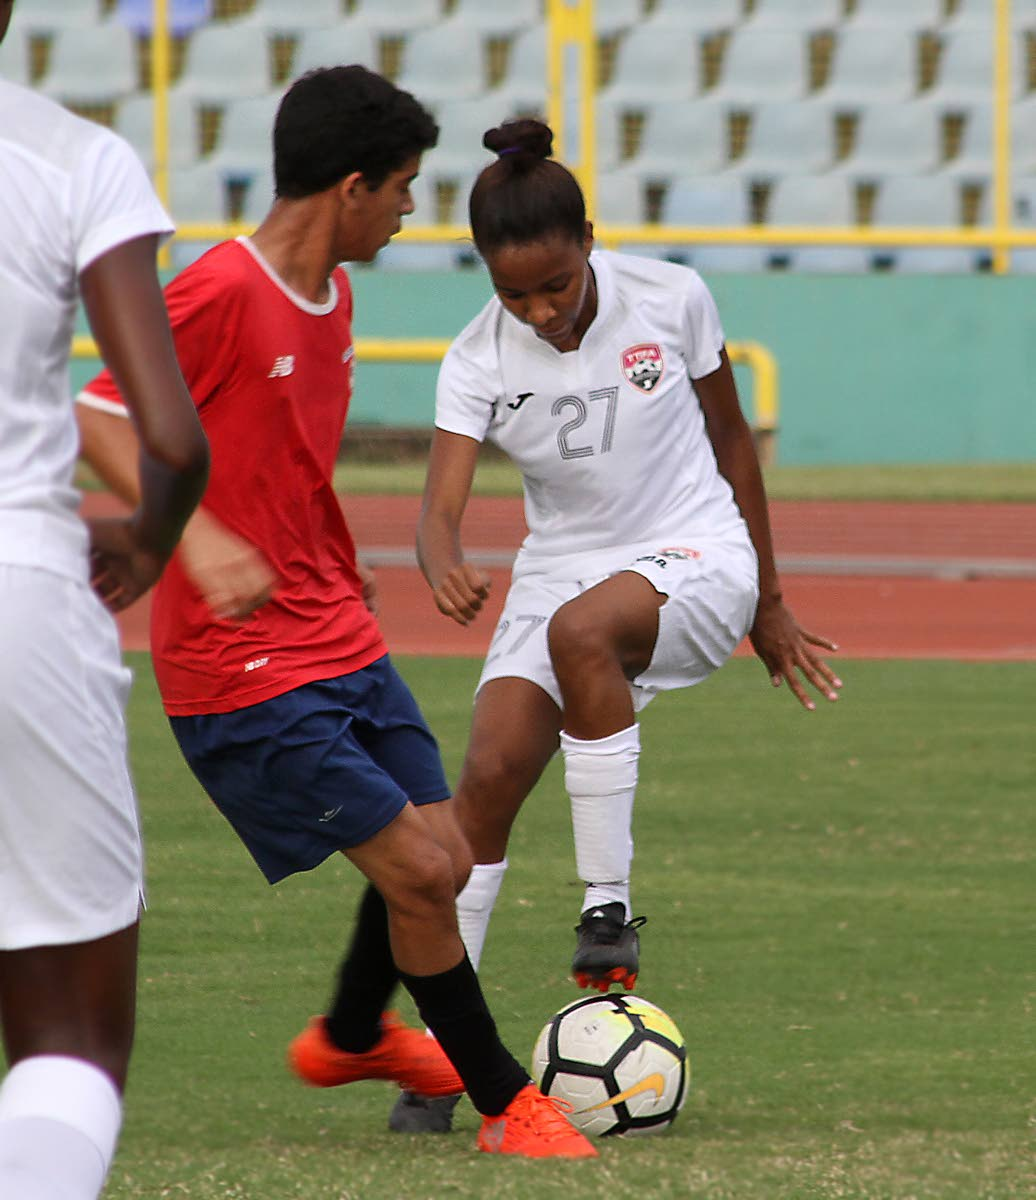 Trinidad and Tobago's Raynicia Charles, right, on the ball against Andrew De Gannes in a friendly match between the national women's Under-20 team vs a North U-15 boys team at the Hasely Crawford Stadium, Mucurapo.